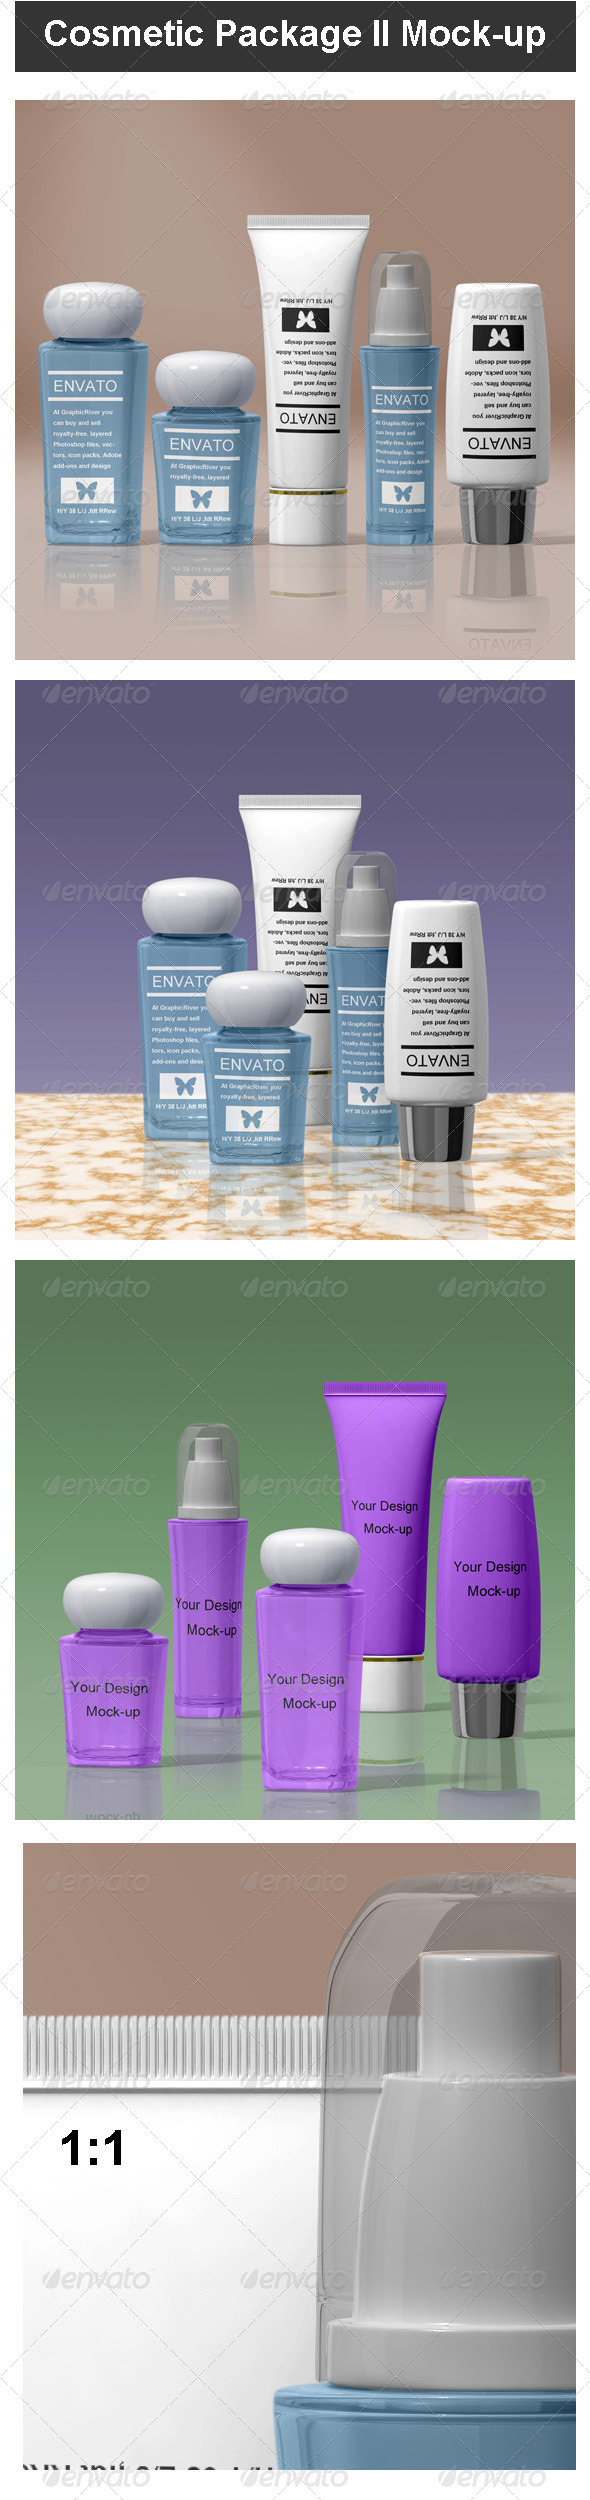 Cosmetic Package II Mock-up - Beauty Packaging